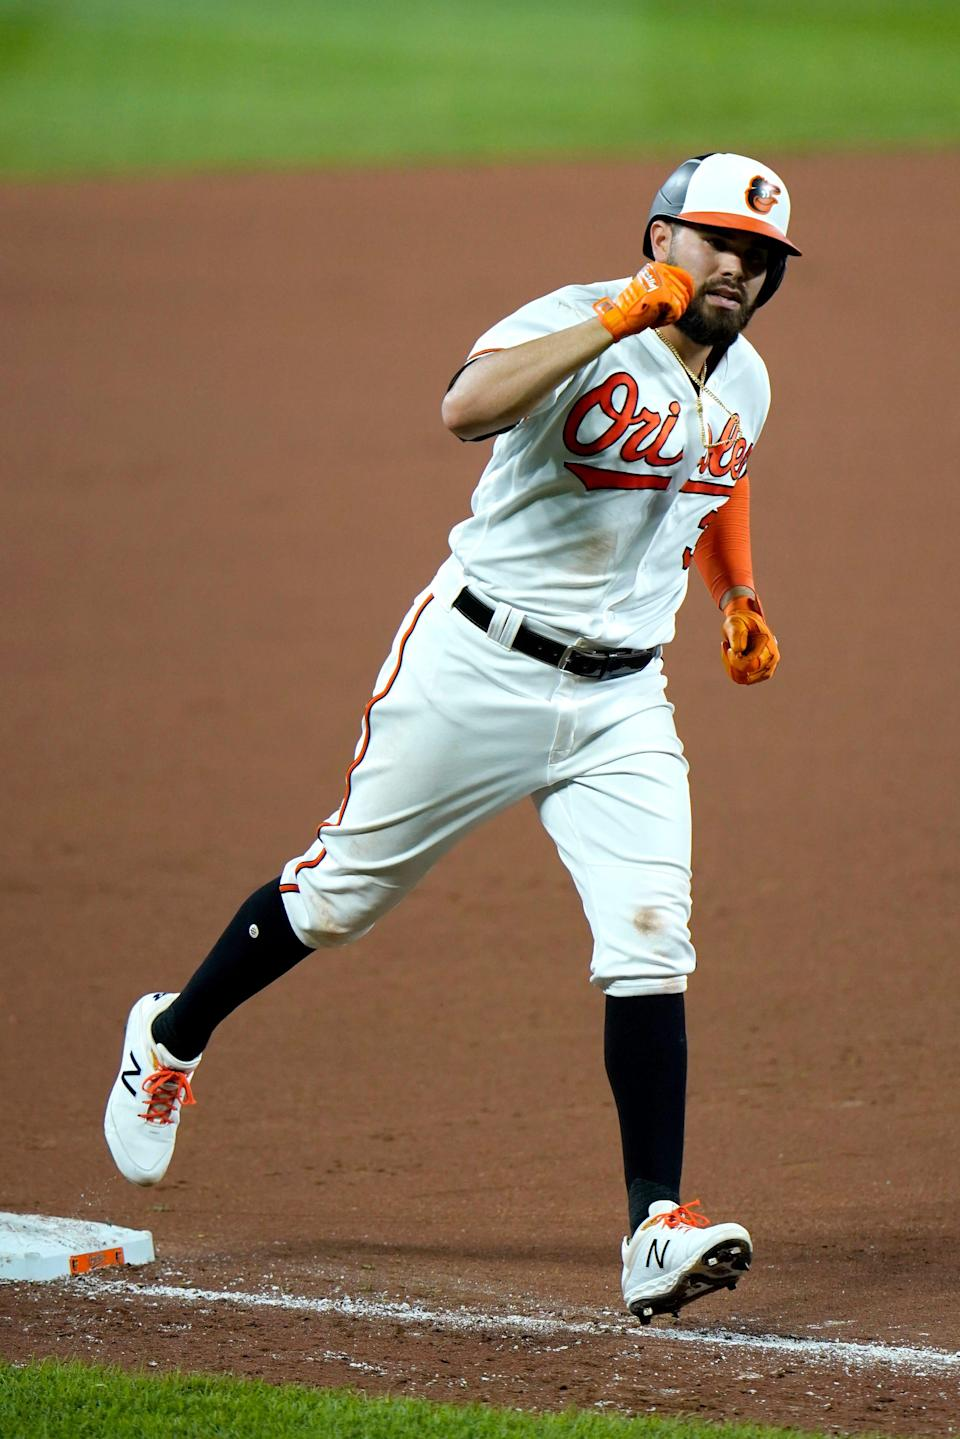 Baltimore Orioles' Renato Nunez runs the bases after hitting a solo home run off New York Mets relief pitcher Franklyn Kilome during the seventh inning of a baseball game, Tuesday, Sept. 1, 2020, in Baltimore. (AP Photo/Julio Cortez)